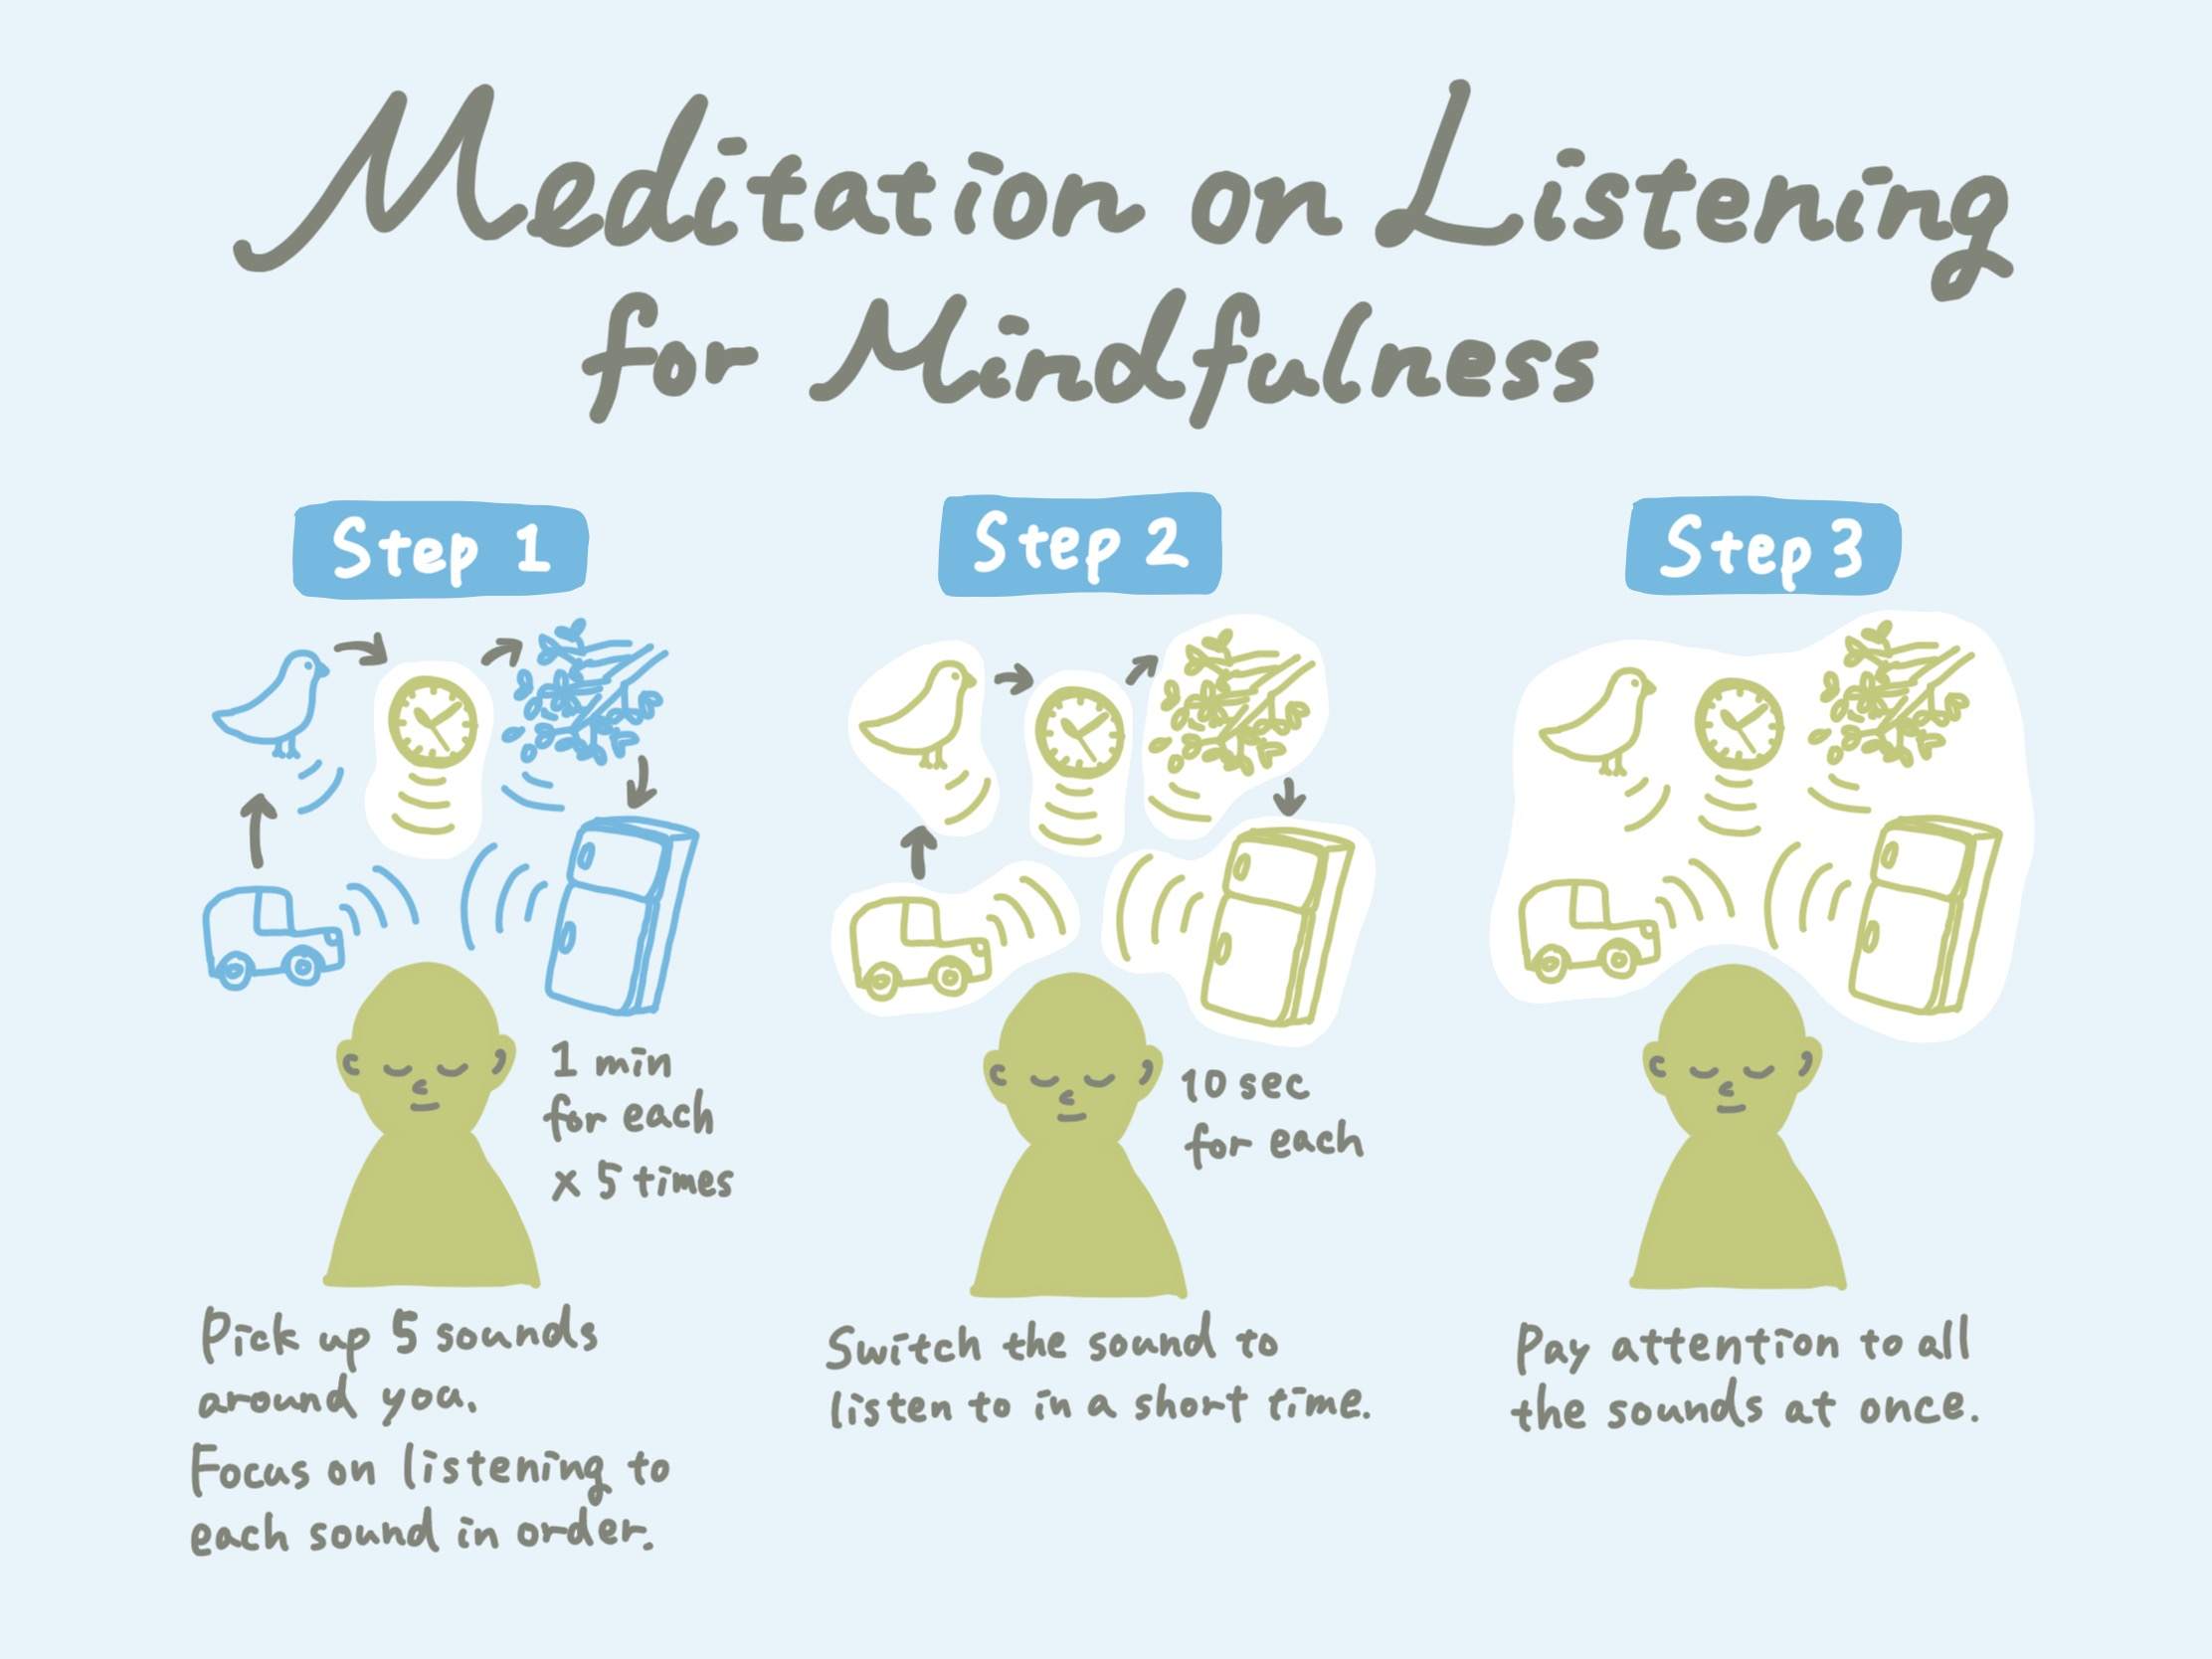 Meditation on Listening for Mindfulness